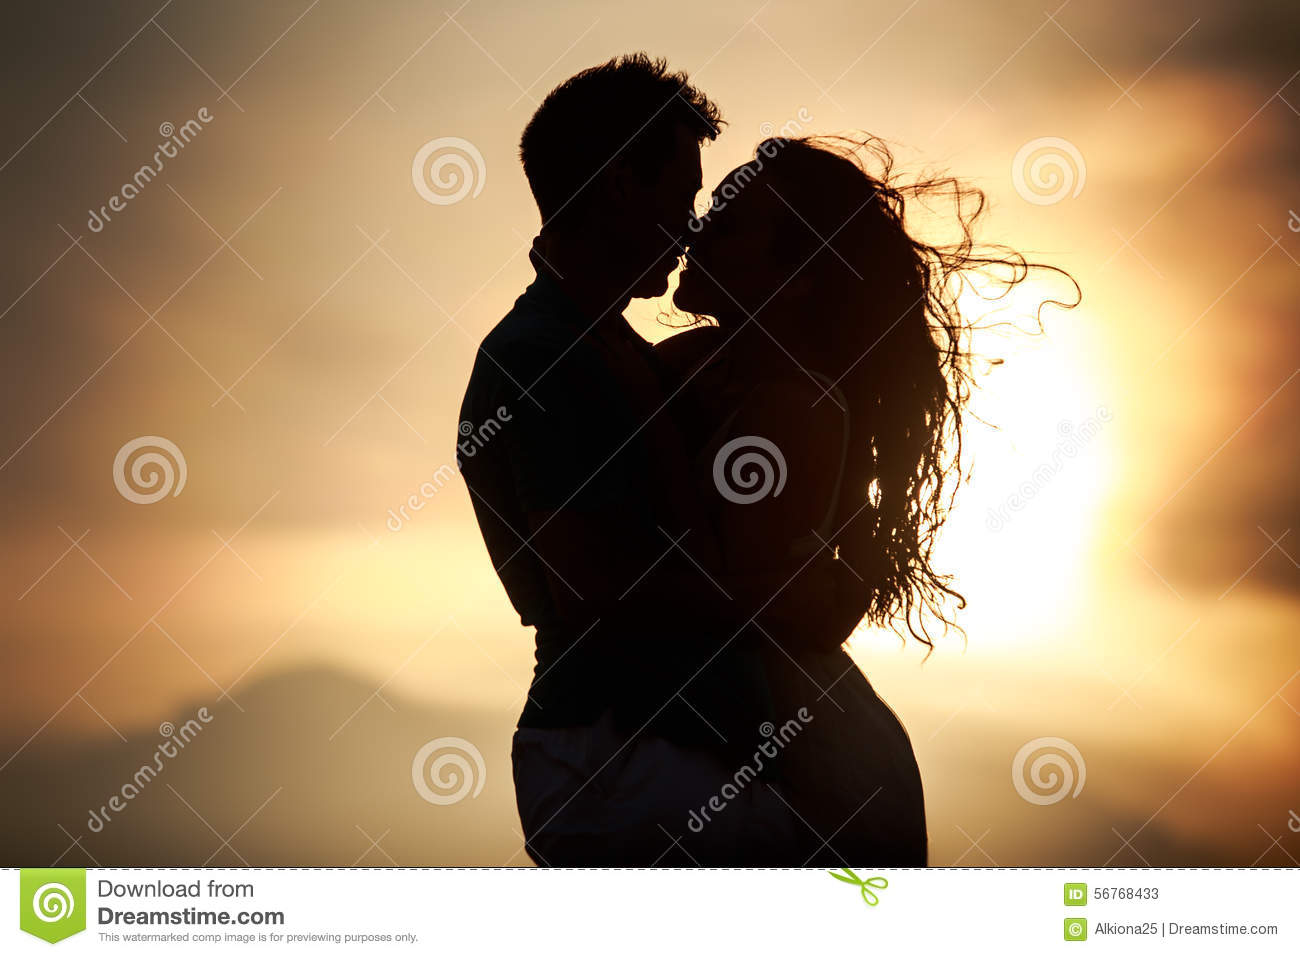 silhouette of kissing guy and girl at dawn